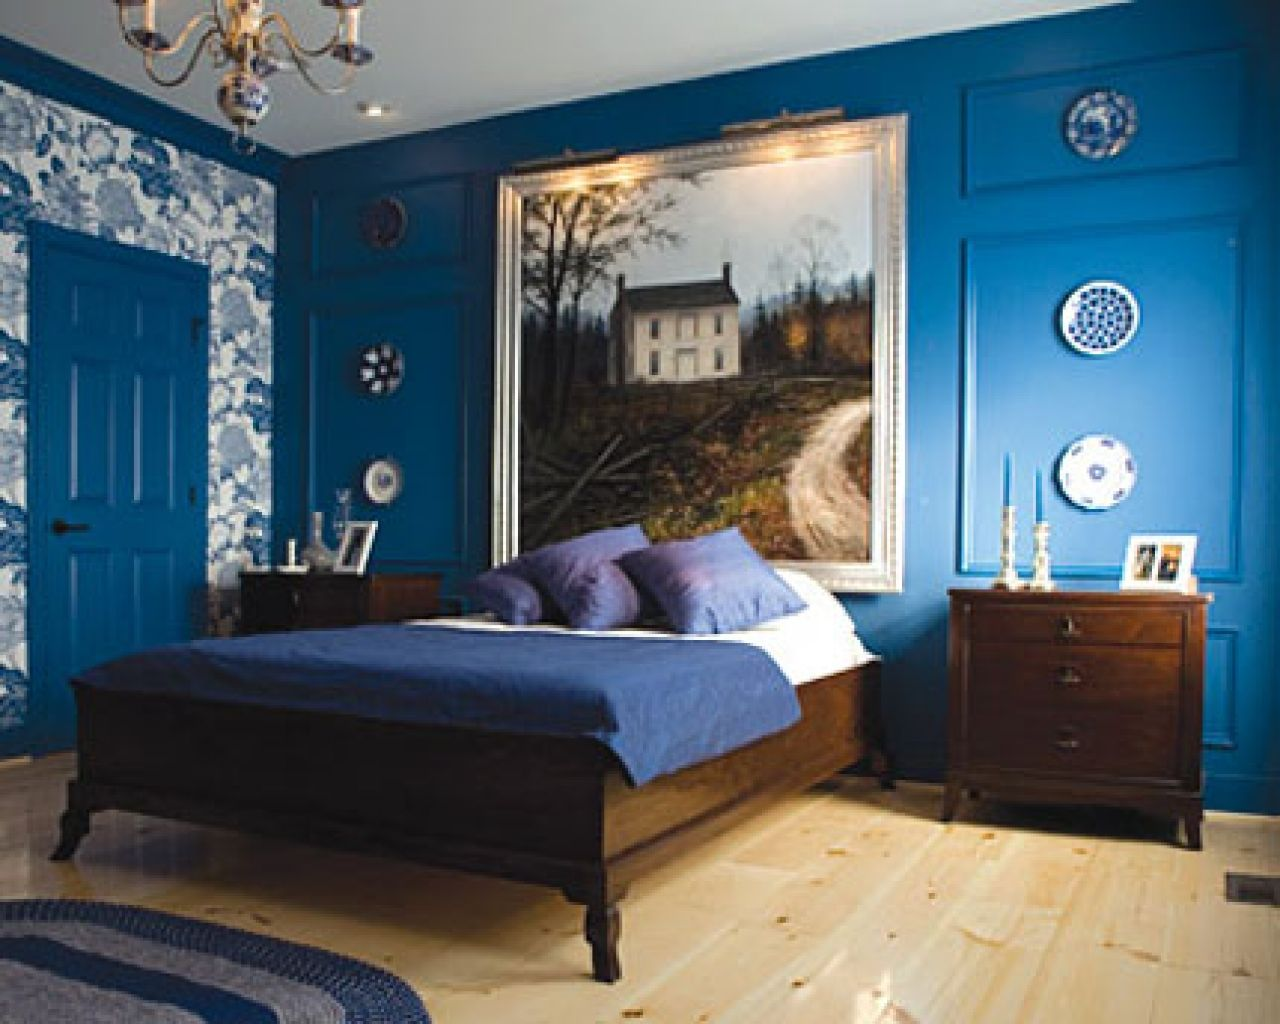 Bedroom painting design ideas pretty natural bedroom paint - Blue bedroom paint ideas ...